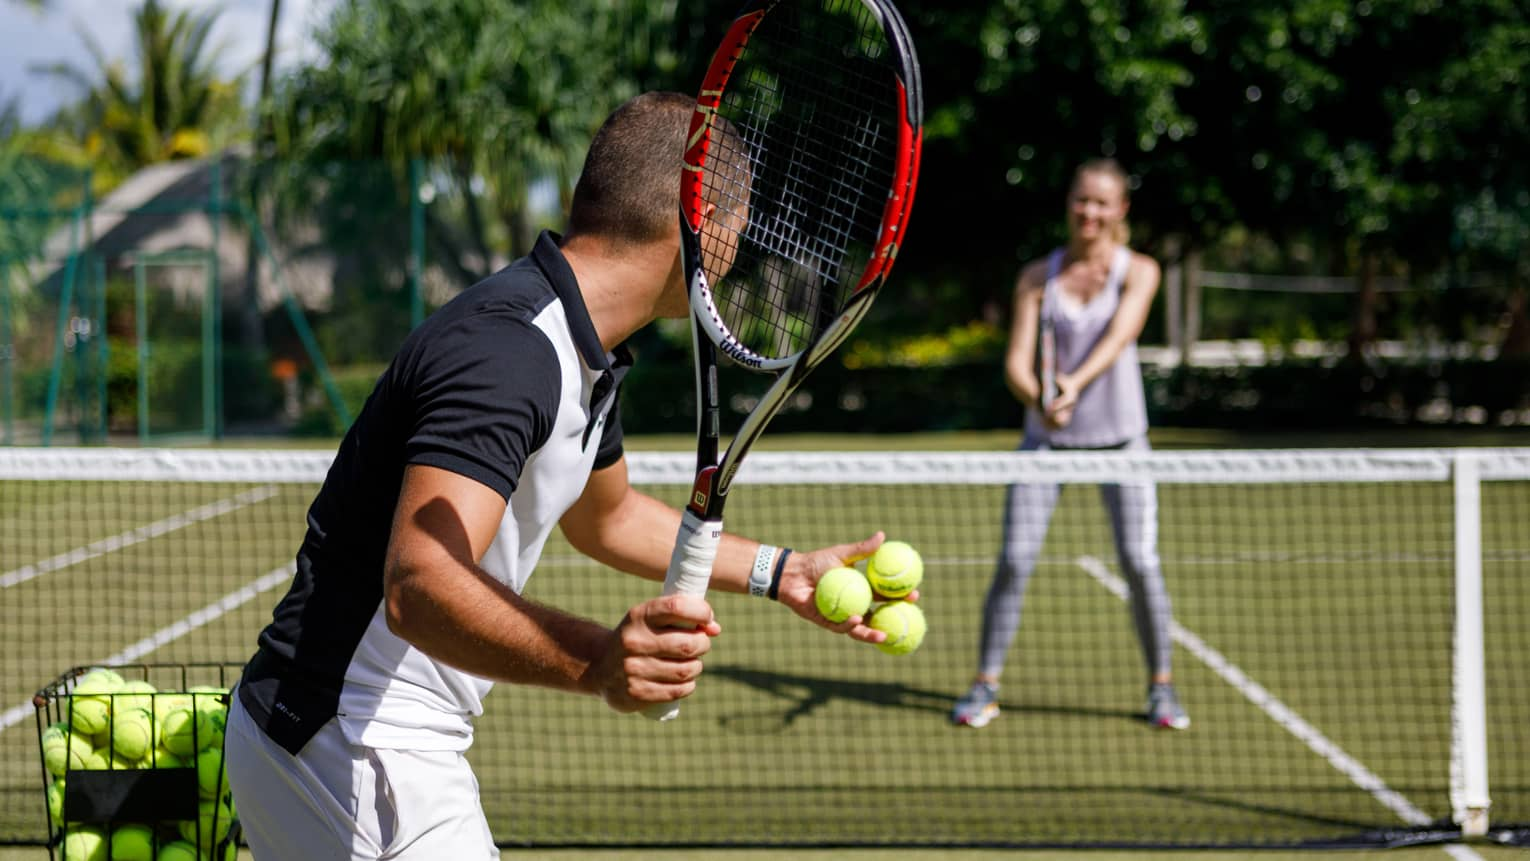 Couple playing tennis on court, man prepares to serve tennis balls to woman ready to swing